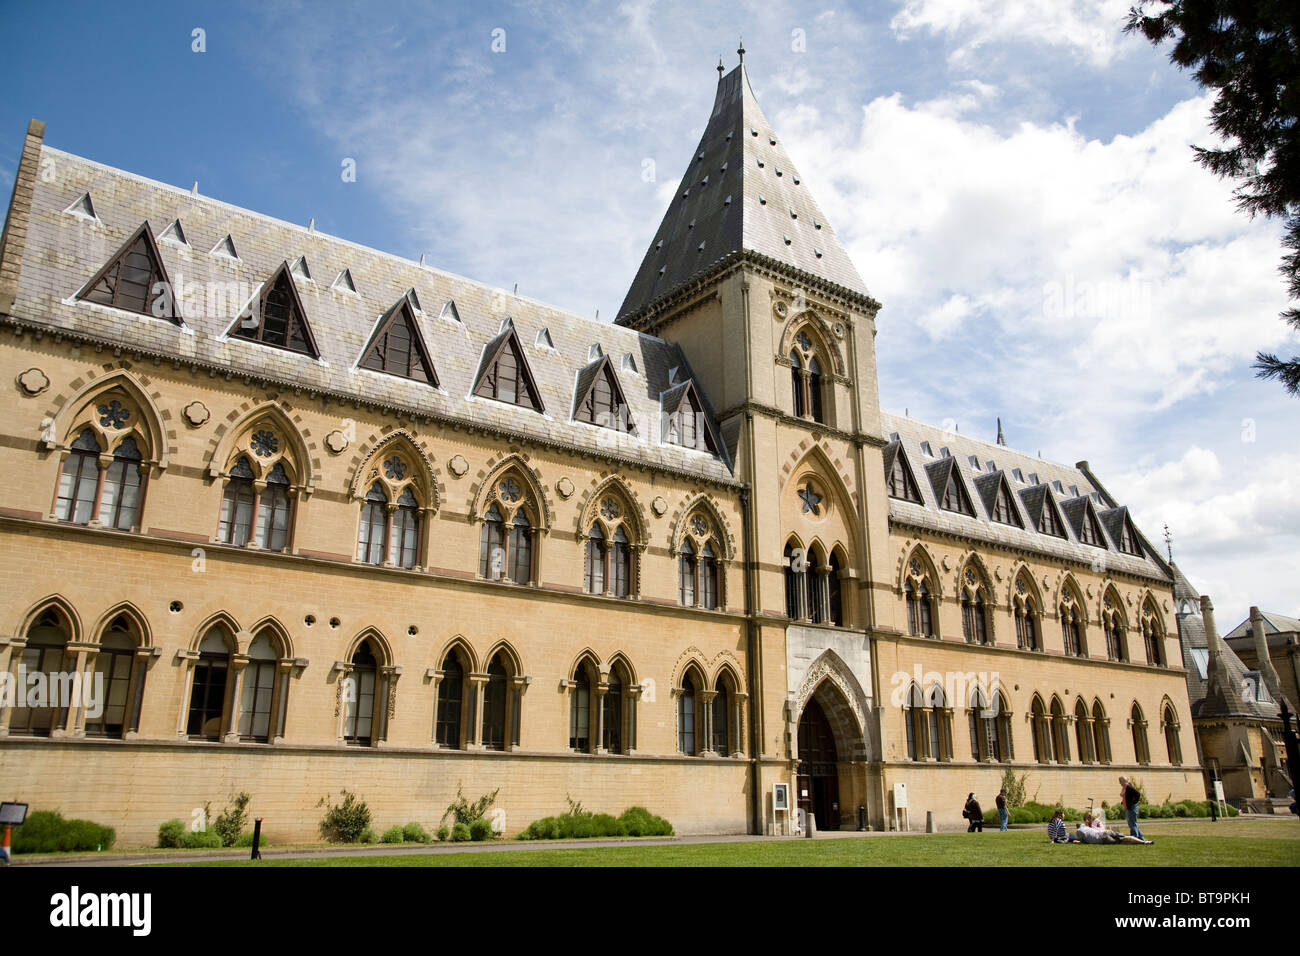 Oxford University, Museum of Natural History. Oxford. England - Stock Image